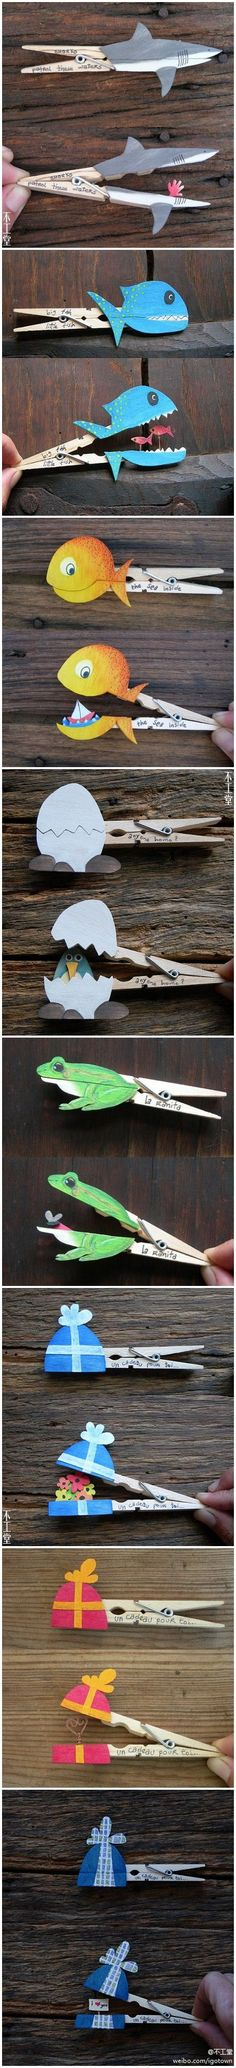 Cute clothespin craft!